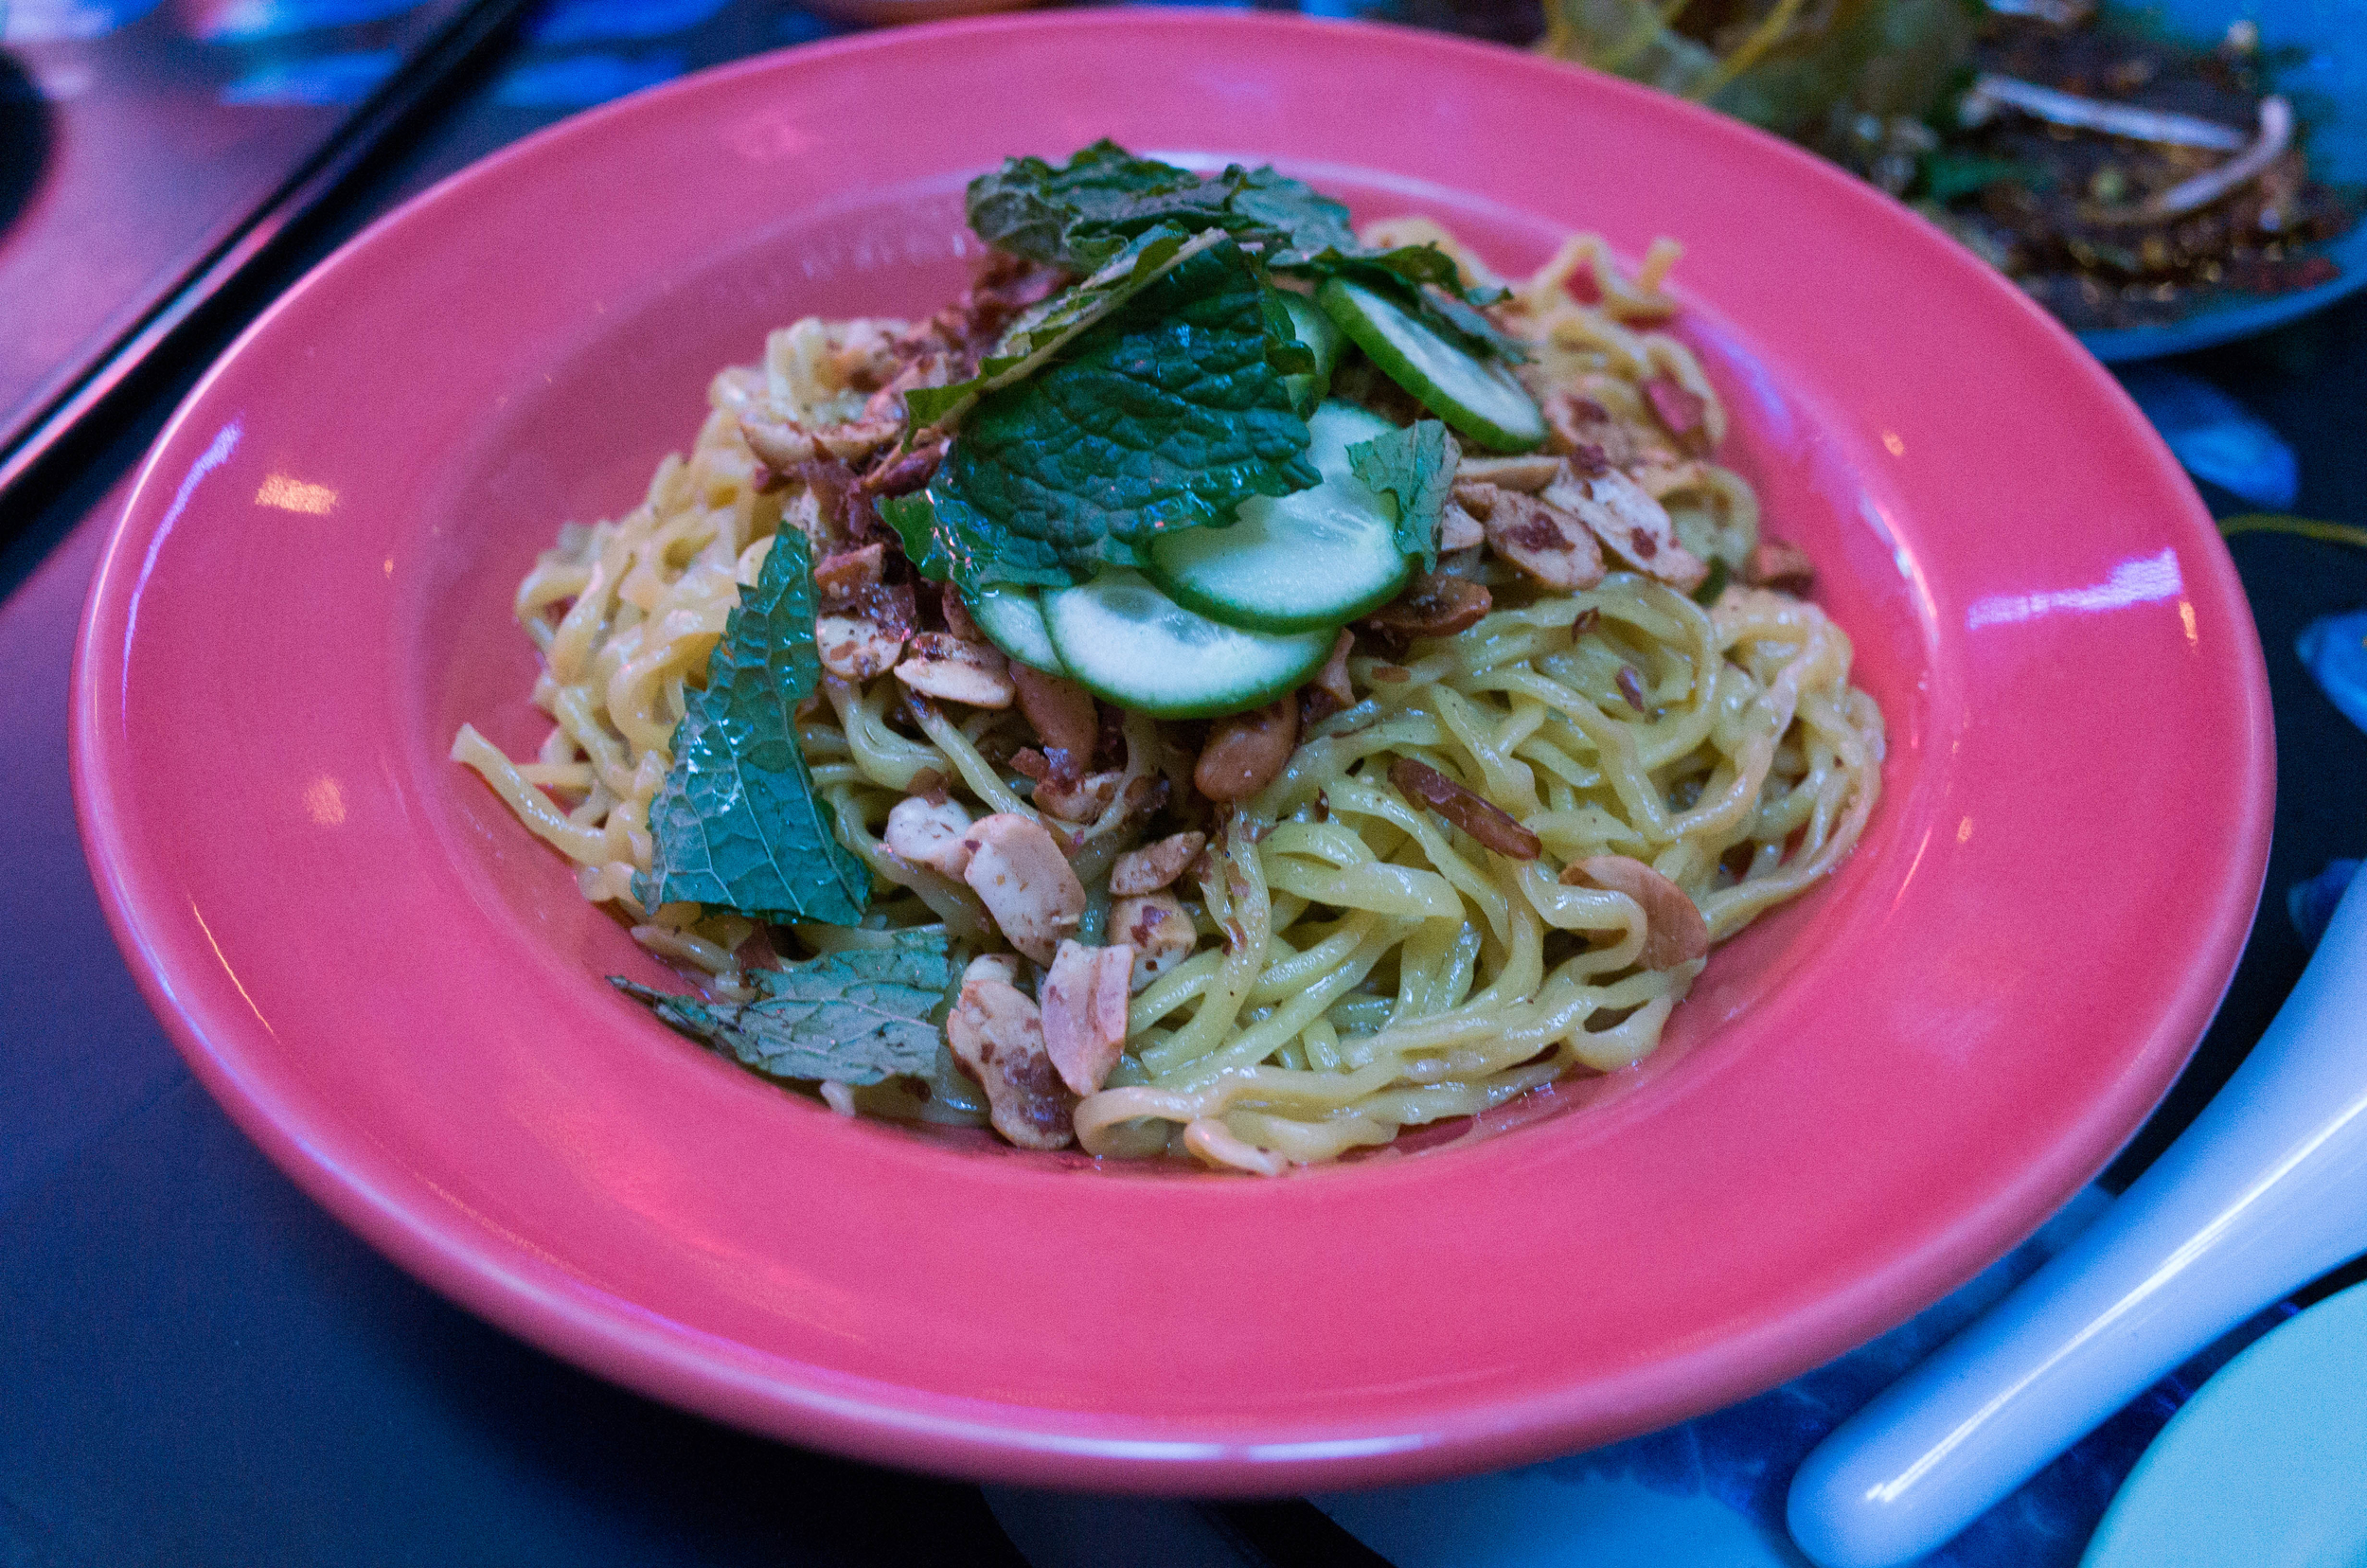 Green Papaya and Banana Blossom Salad - This is what it looks like after the waitress tosses it for you.